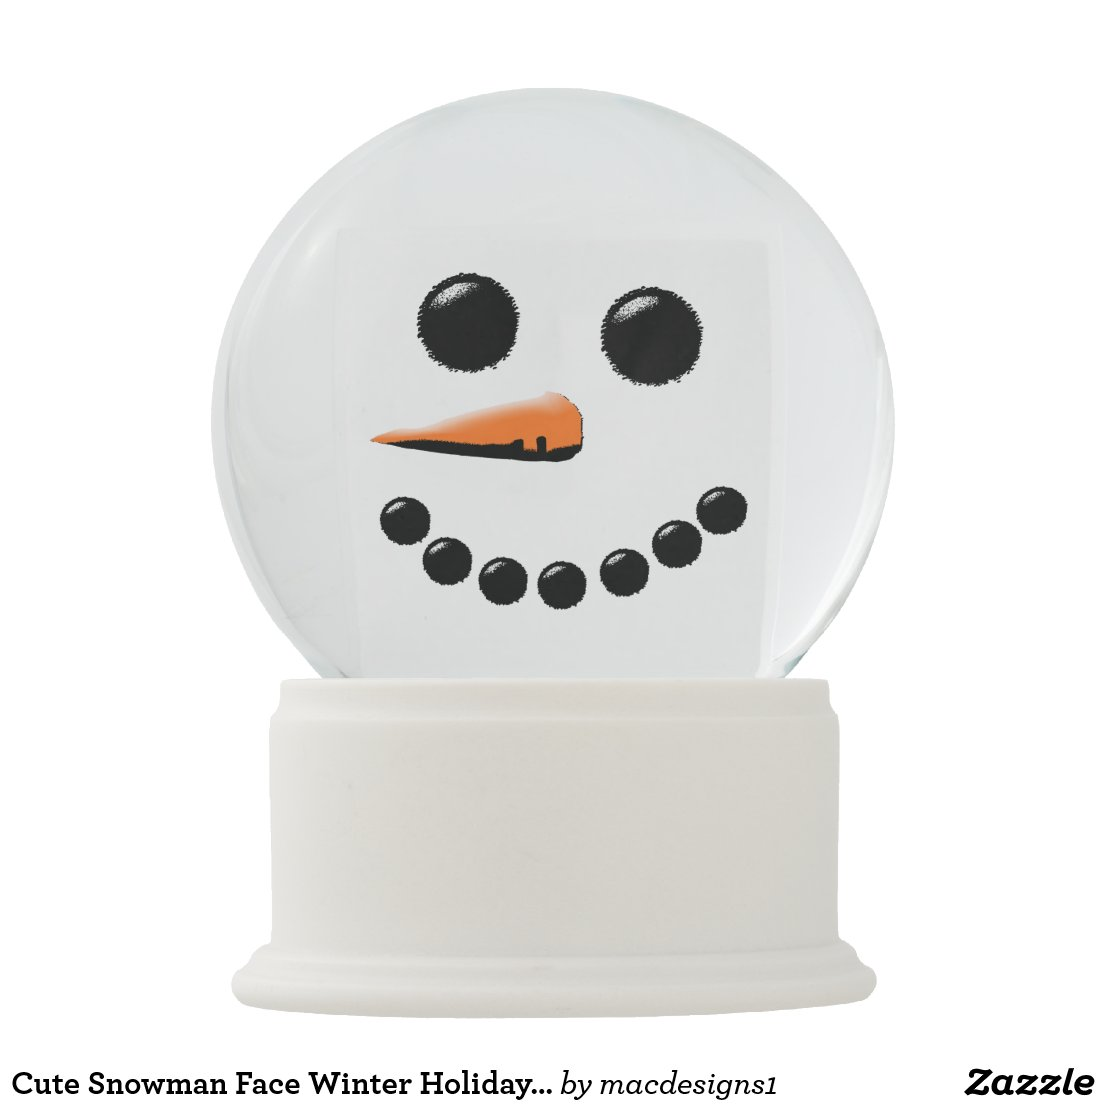 Cute Snowman Face Winter Holiday Snow Globe